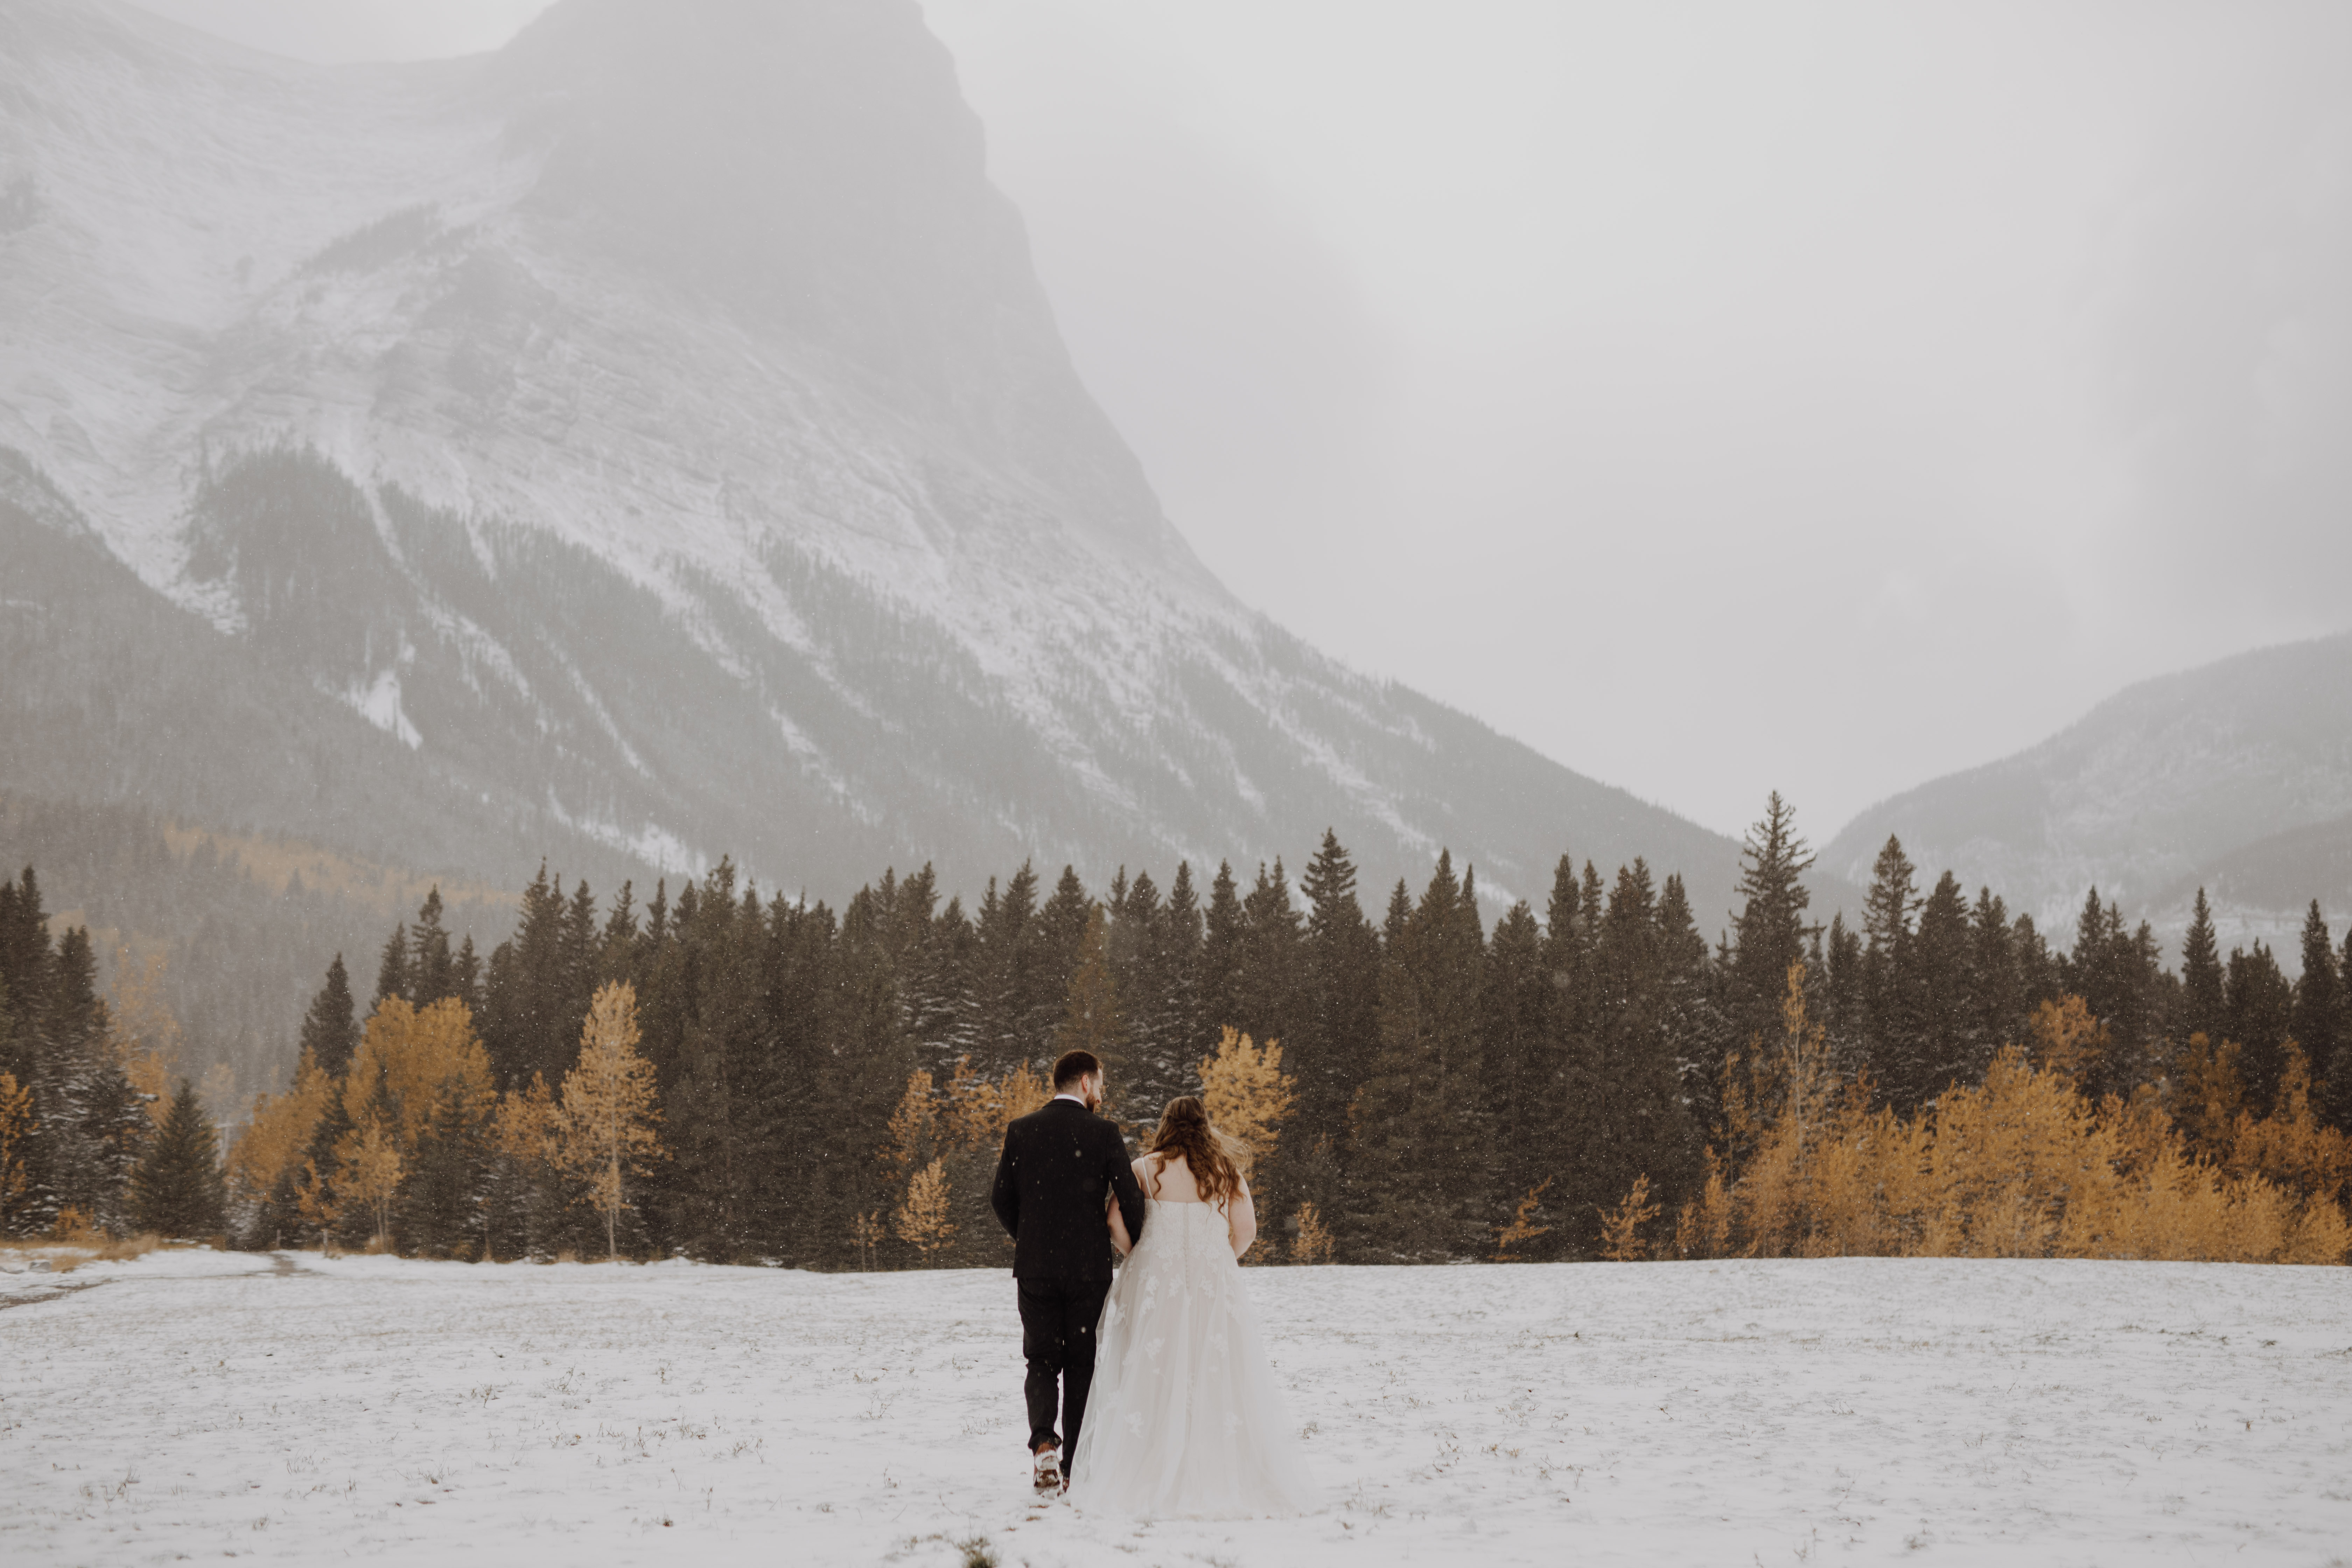 Banff Wedding in the mountains